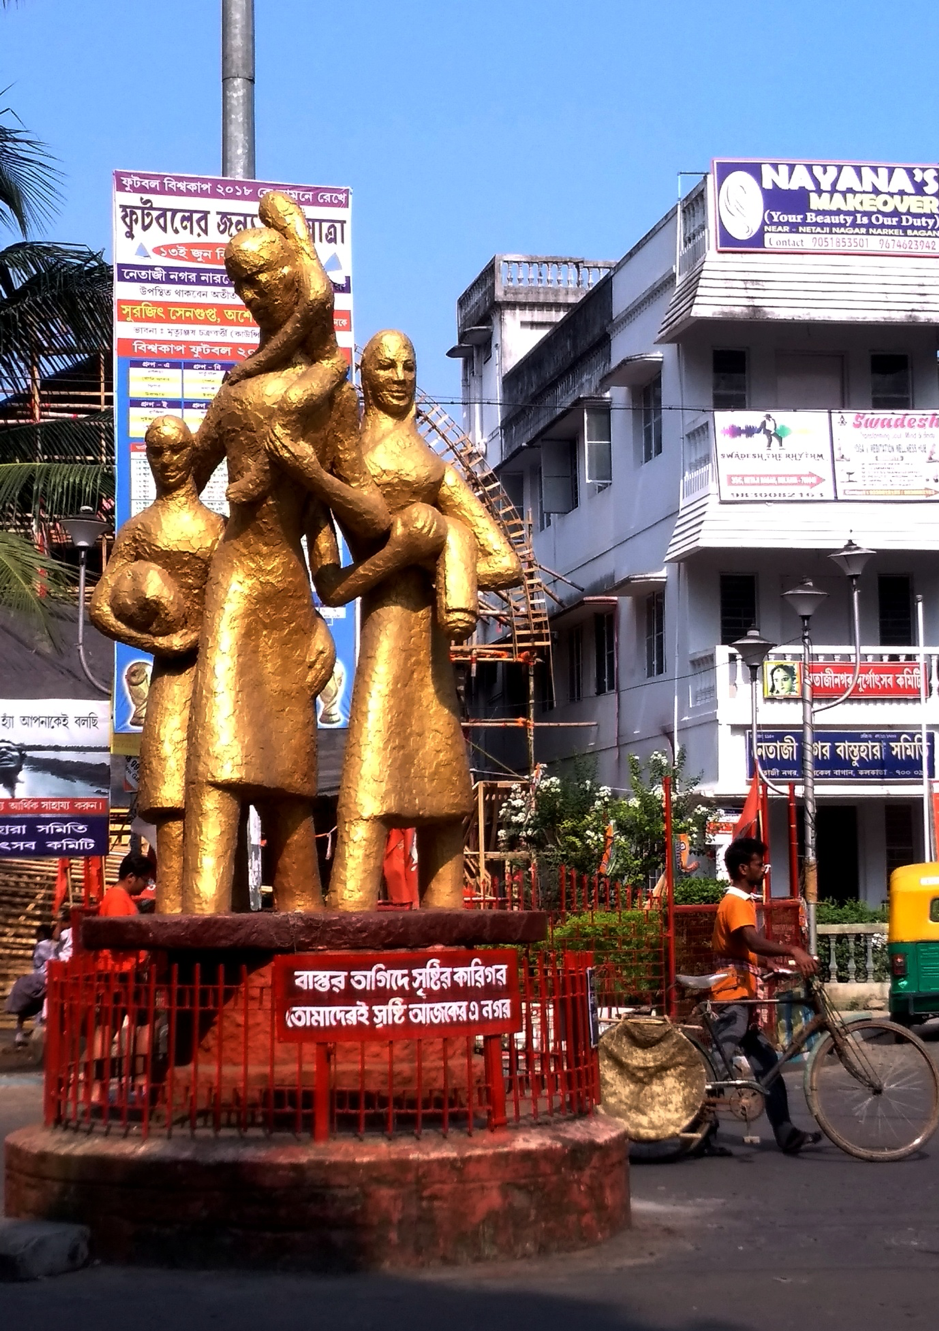 Fig. 4: Netajinagar: The refugee statue and the colony committee office on the right-hand corner. Behind the statue is a glimpse of the pandal of the colony committee puja being made. Courtesy: Priyankar Dey